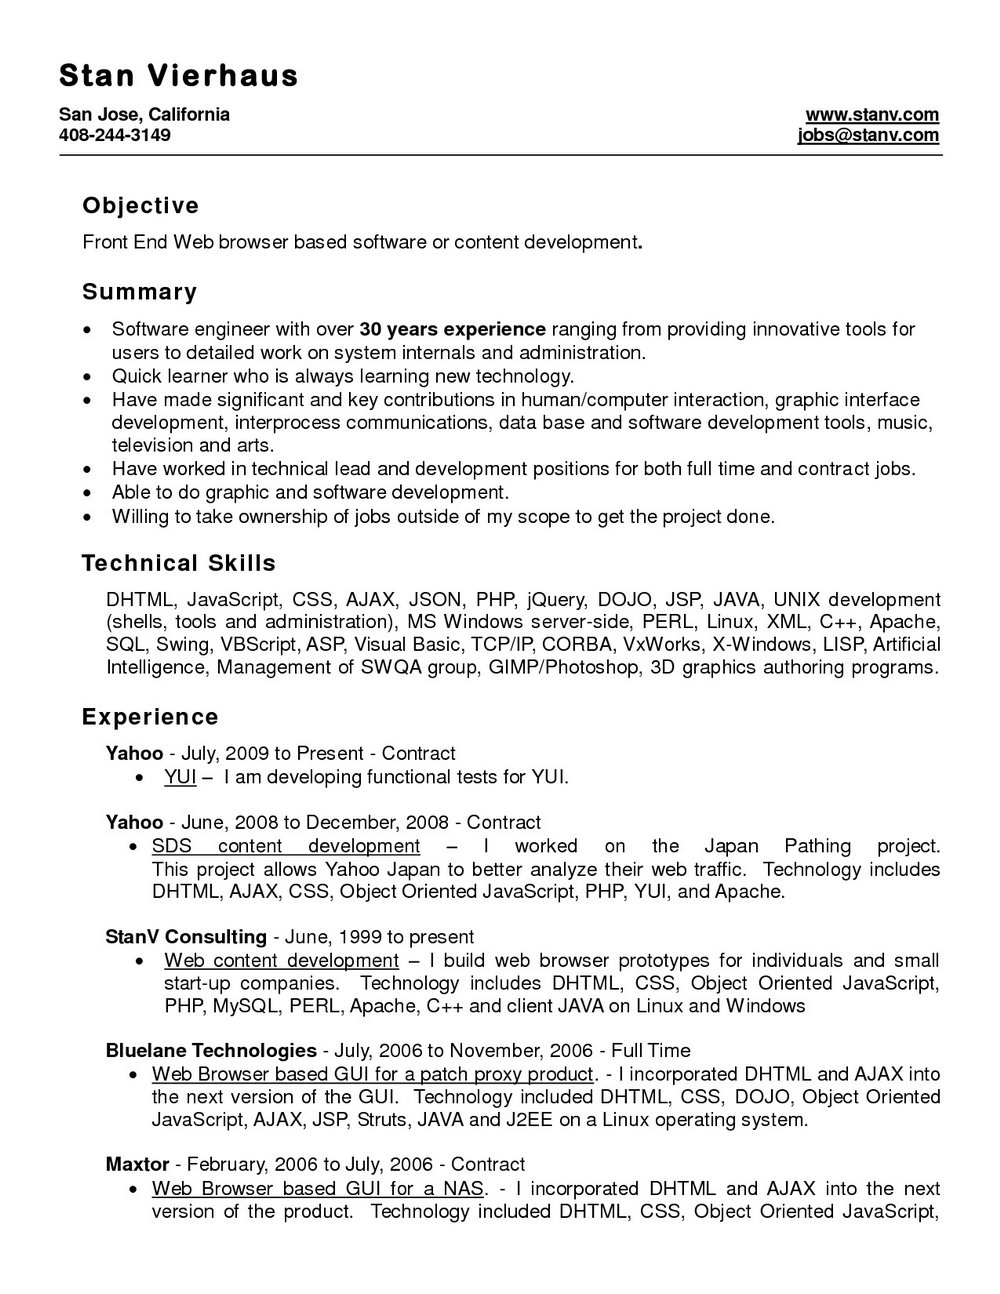 Professional Resume Template Word Free Download - Templates ...